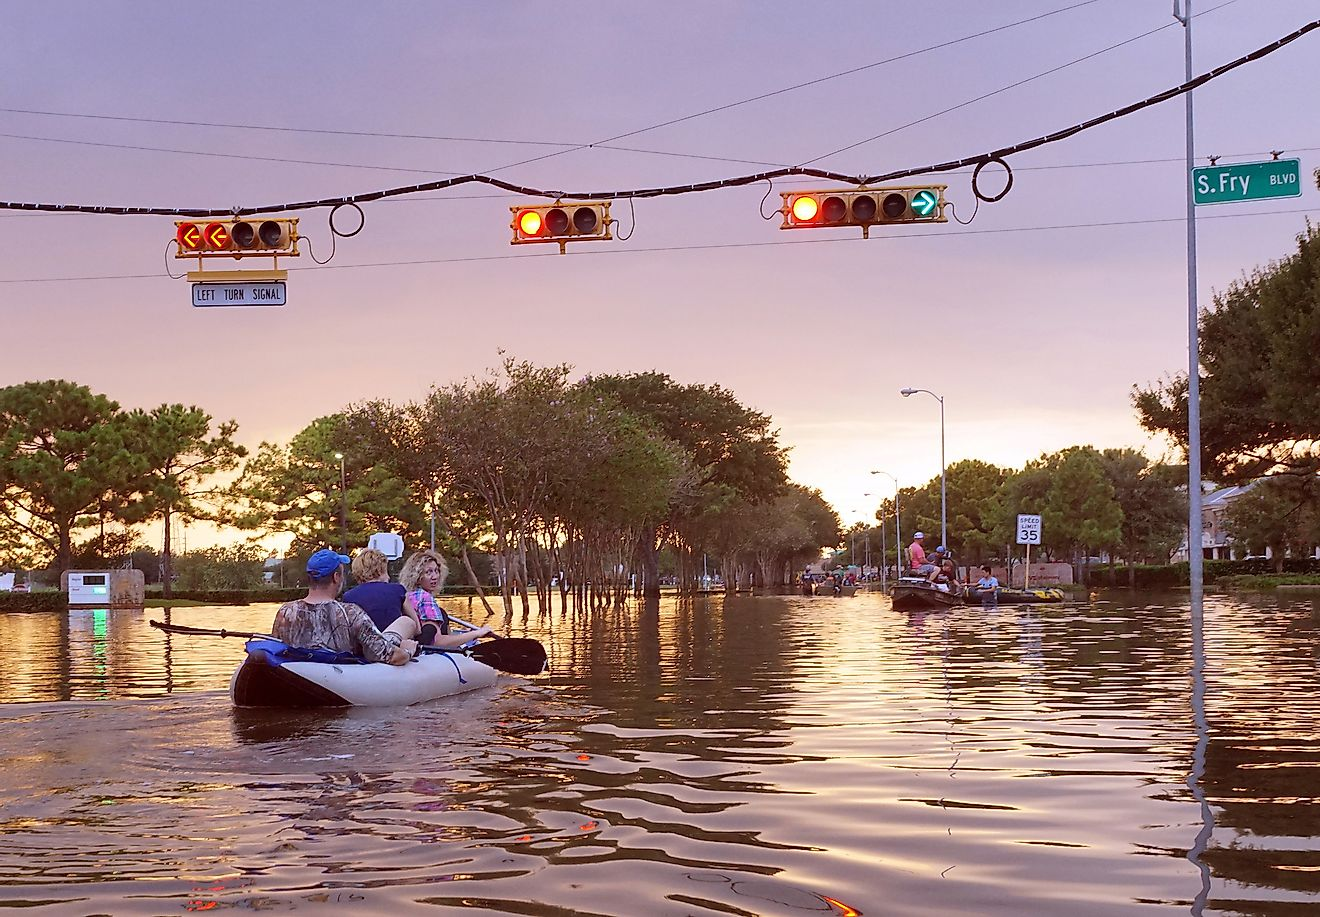 Traffic lights over flooded Houston streets and boats with people at sunset inTexas, USA. Image credit: Irina K/shutterstock.com